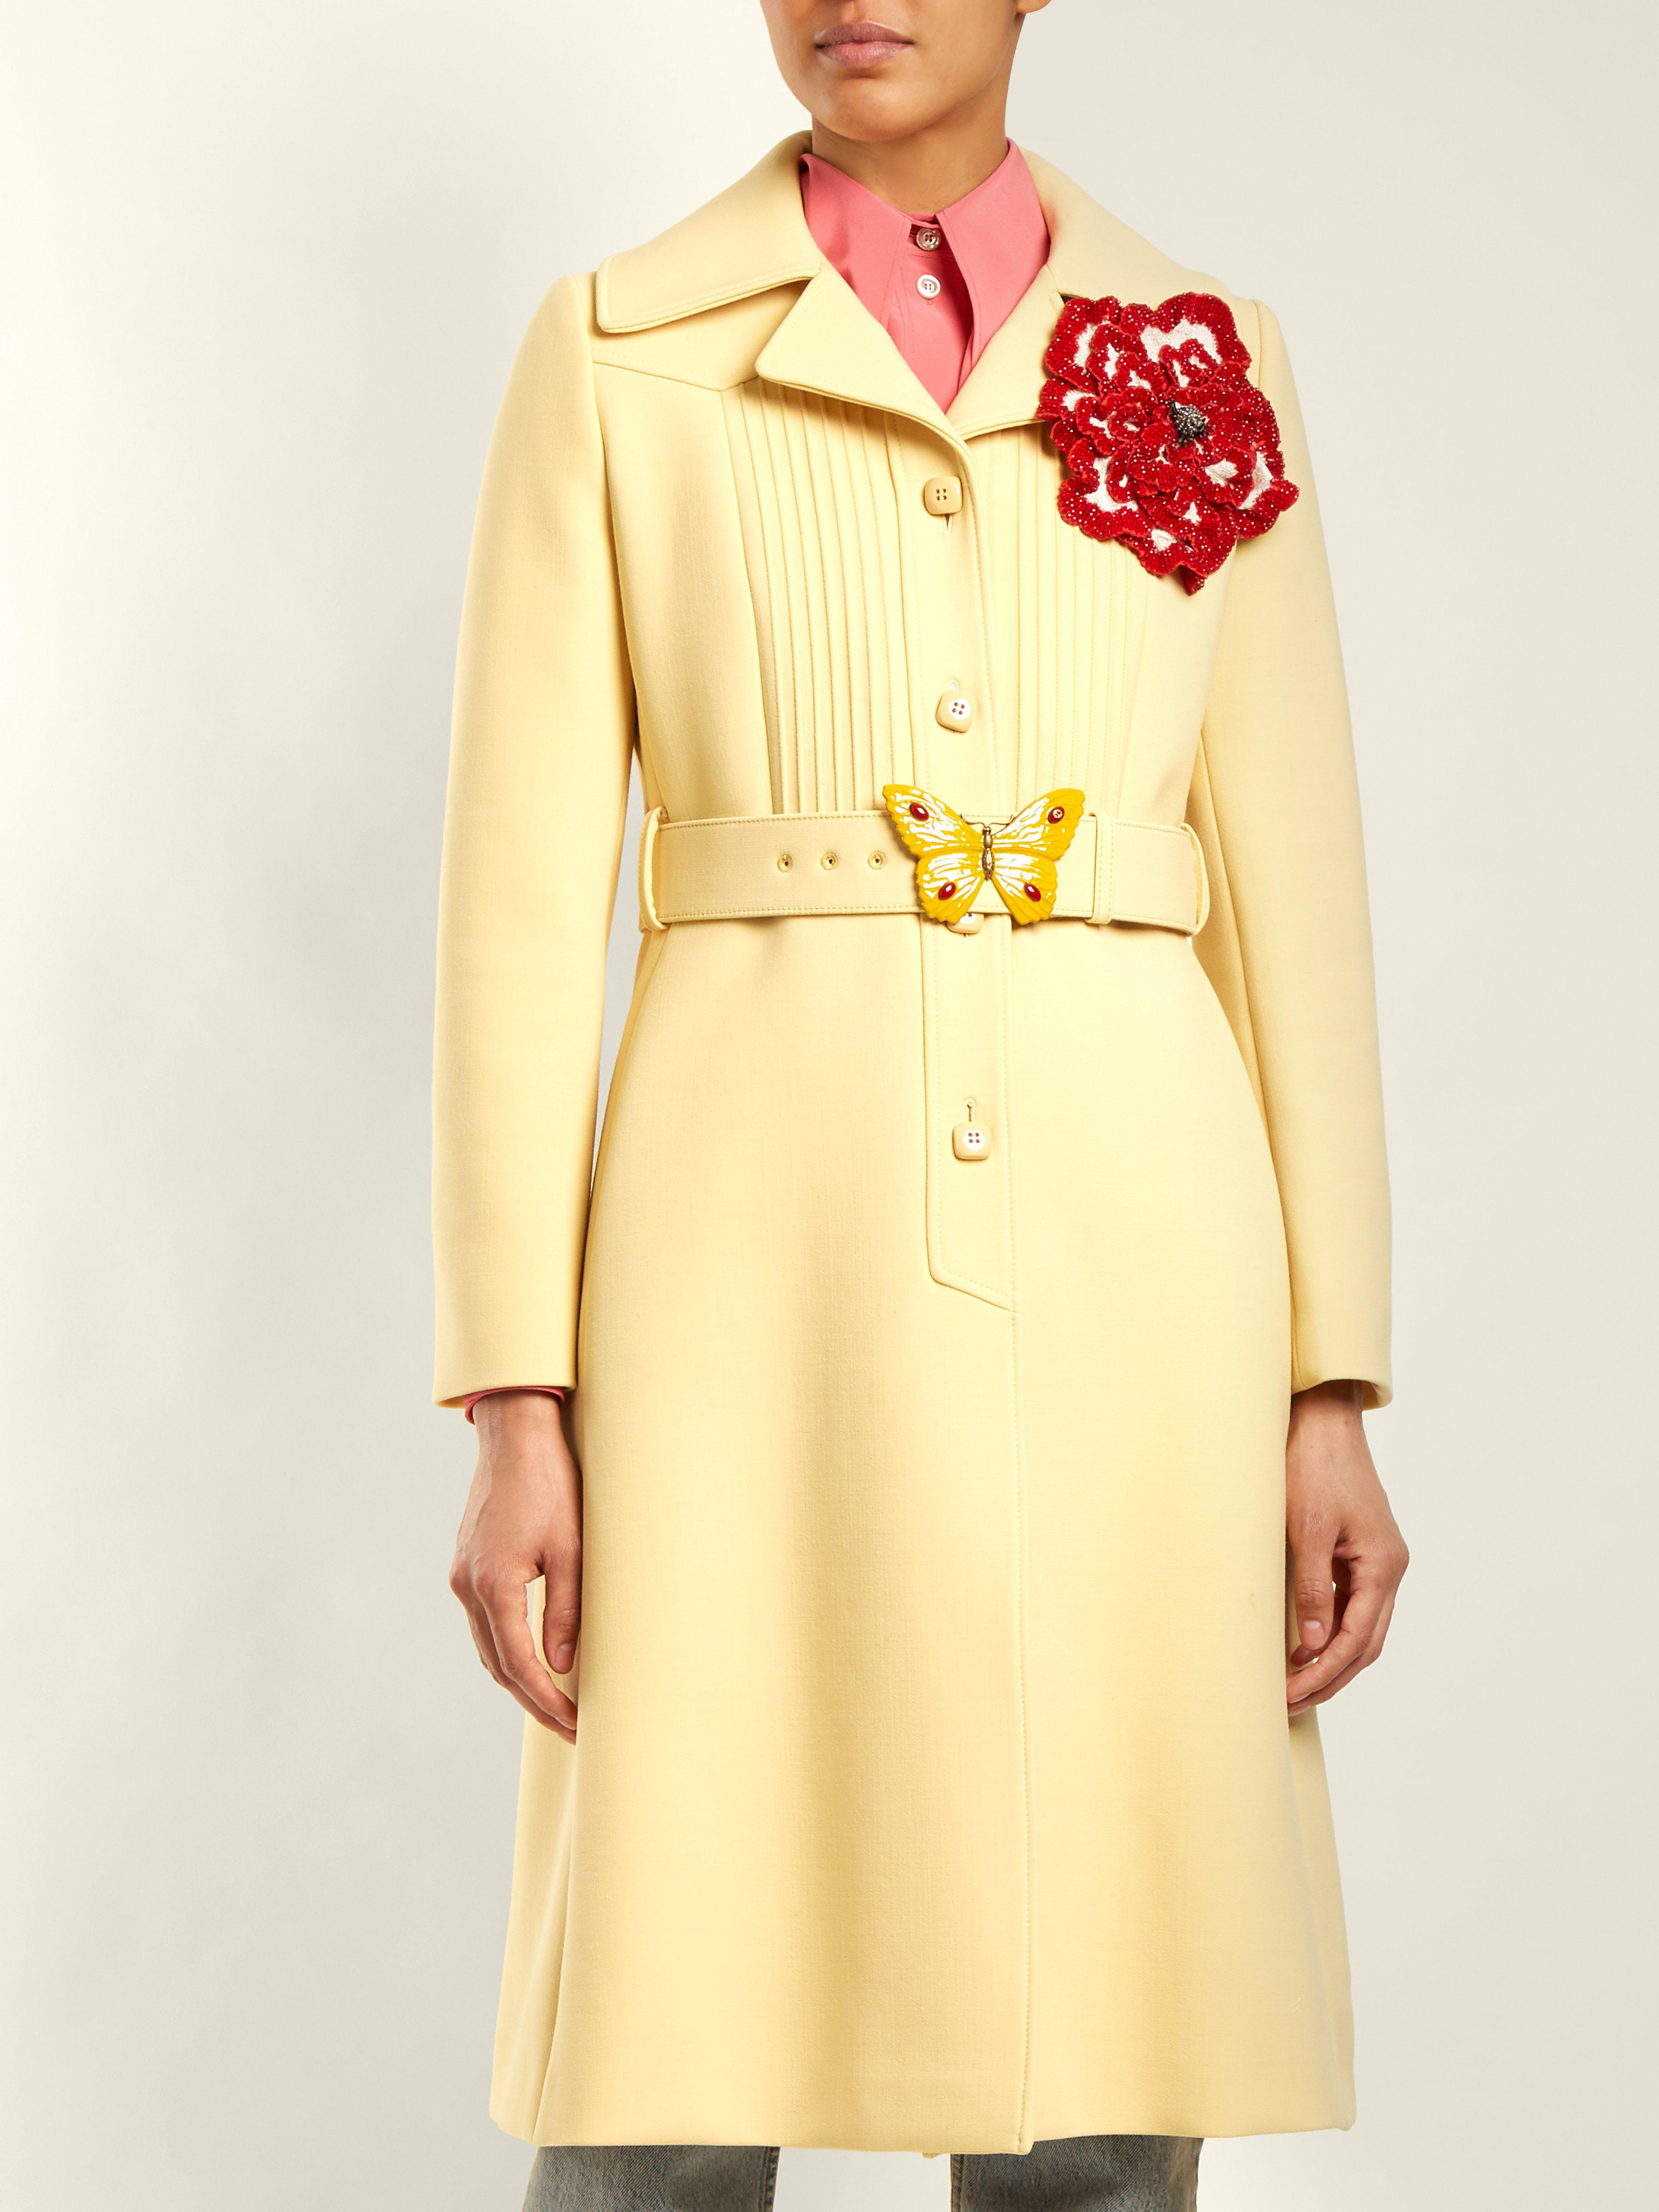 71987f3ad Gucci Pintucked Butterfly-embellished Belt Coat in Yellow - Lyst